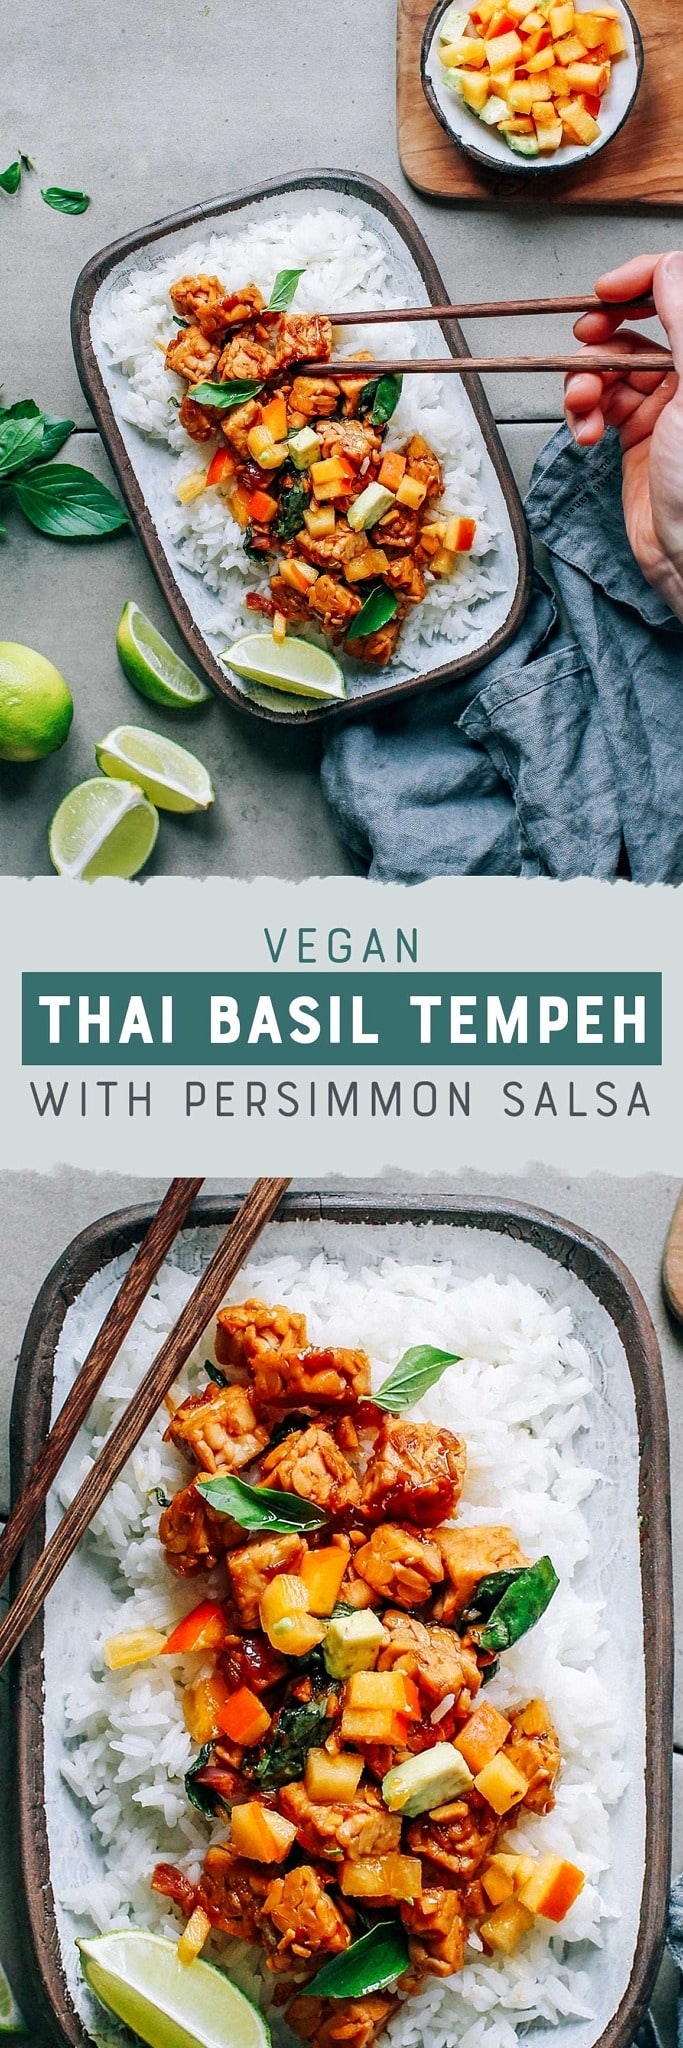 Thai Basil Tempeh with Persimmon Salsa